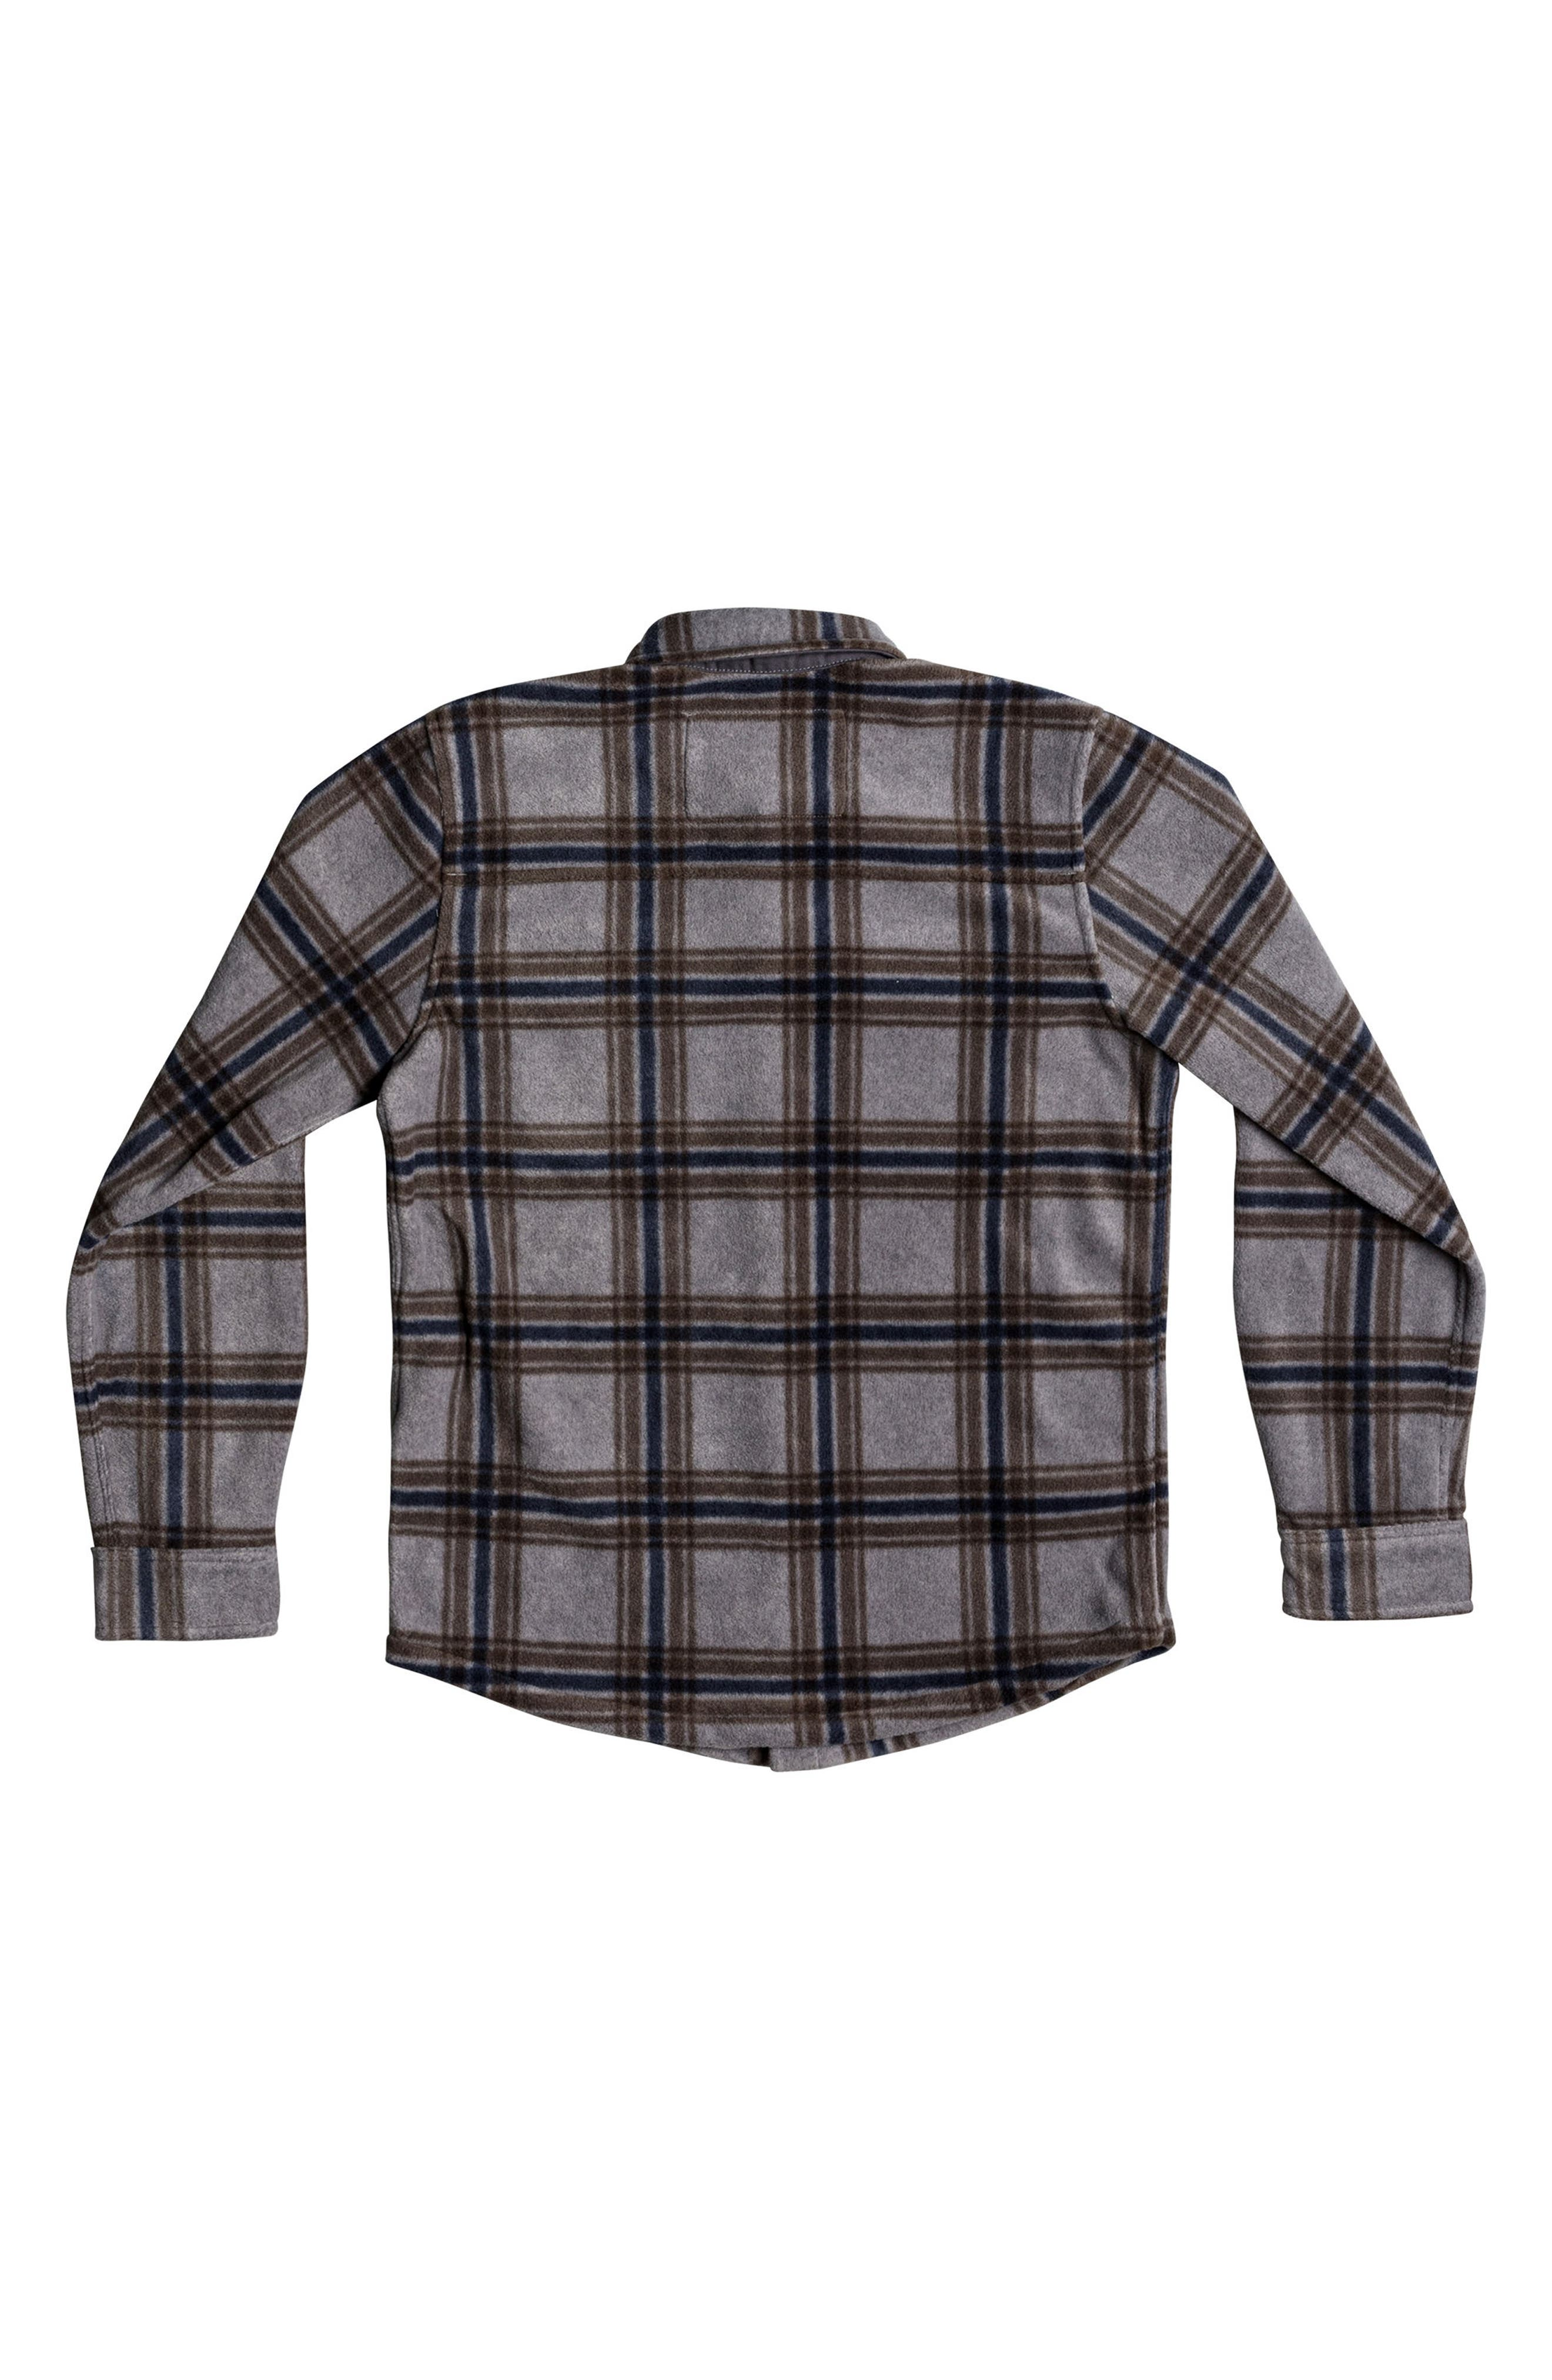 Surf Days Plaid Shirt,                             Alternate thumbnail 2, color,                             Medium Grey Heather Check